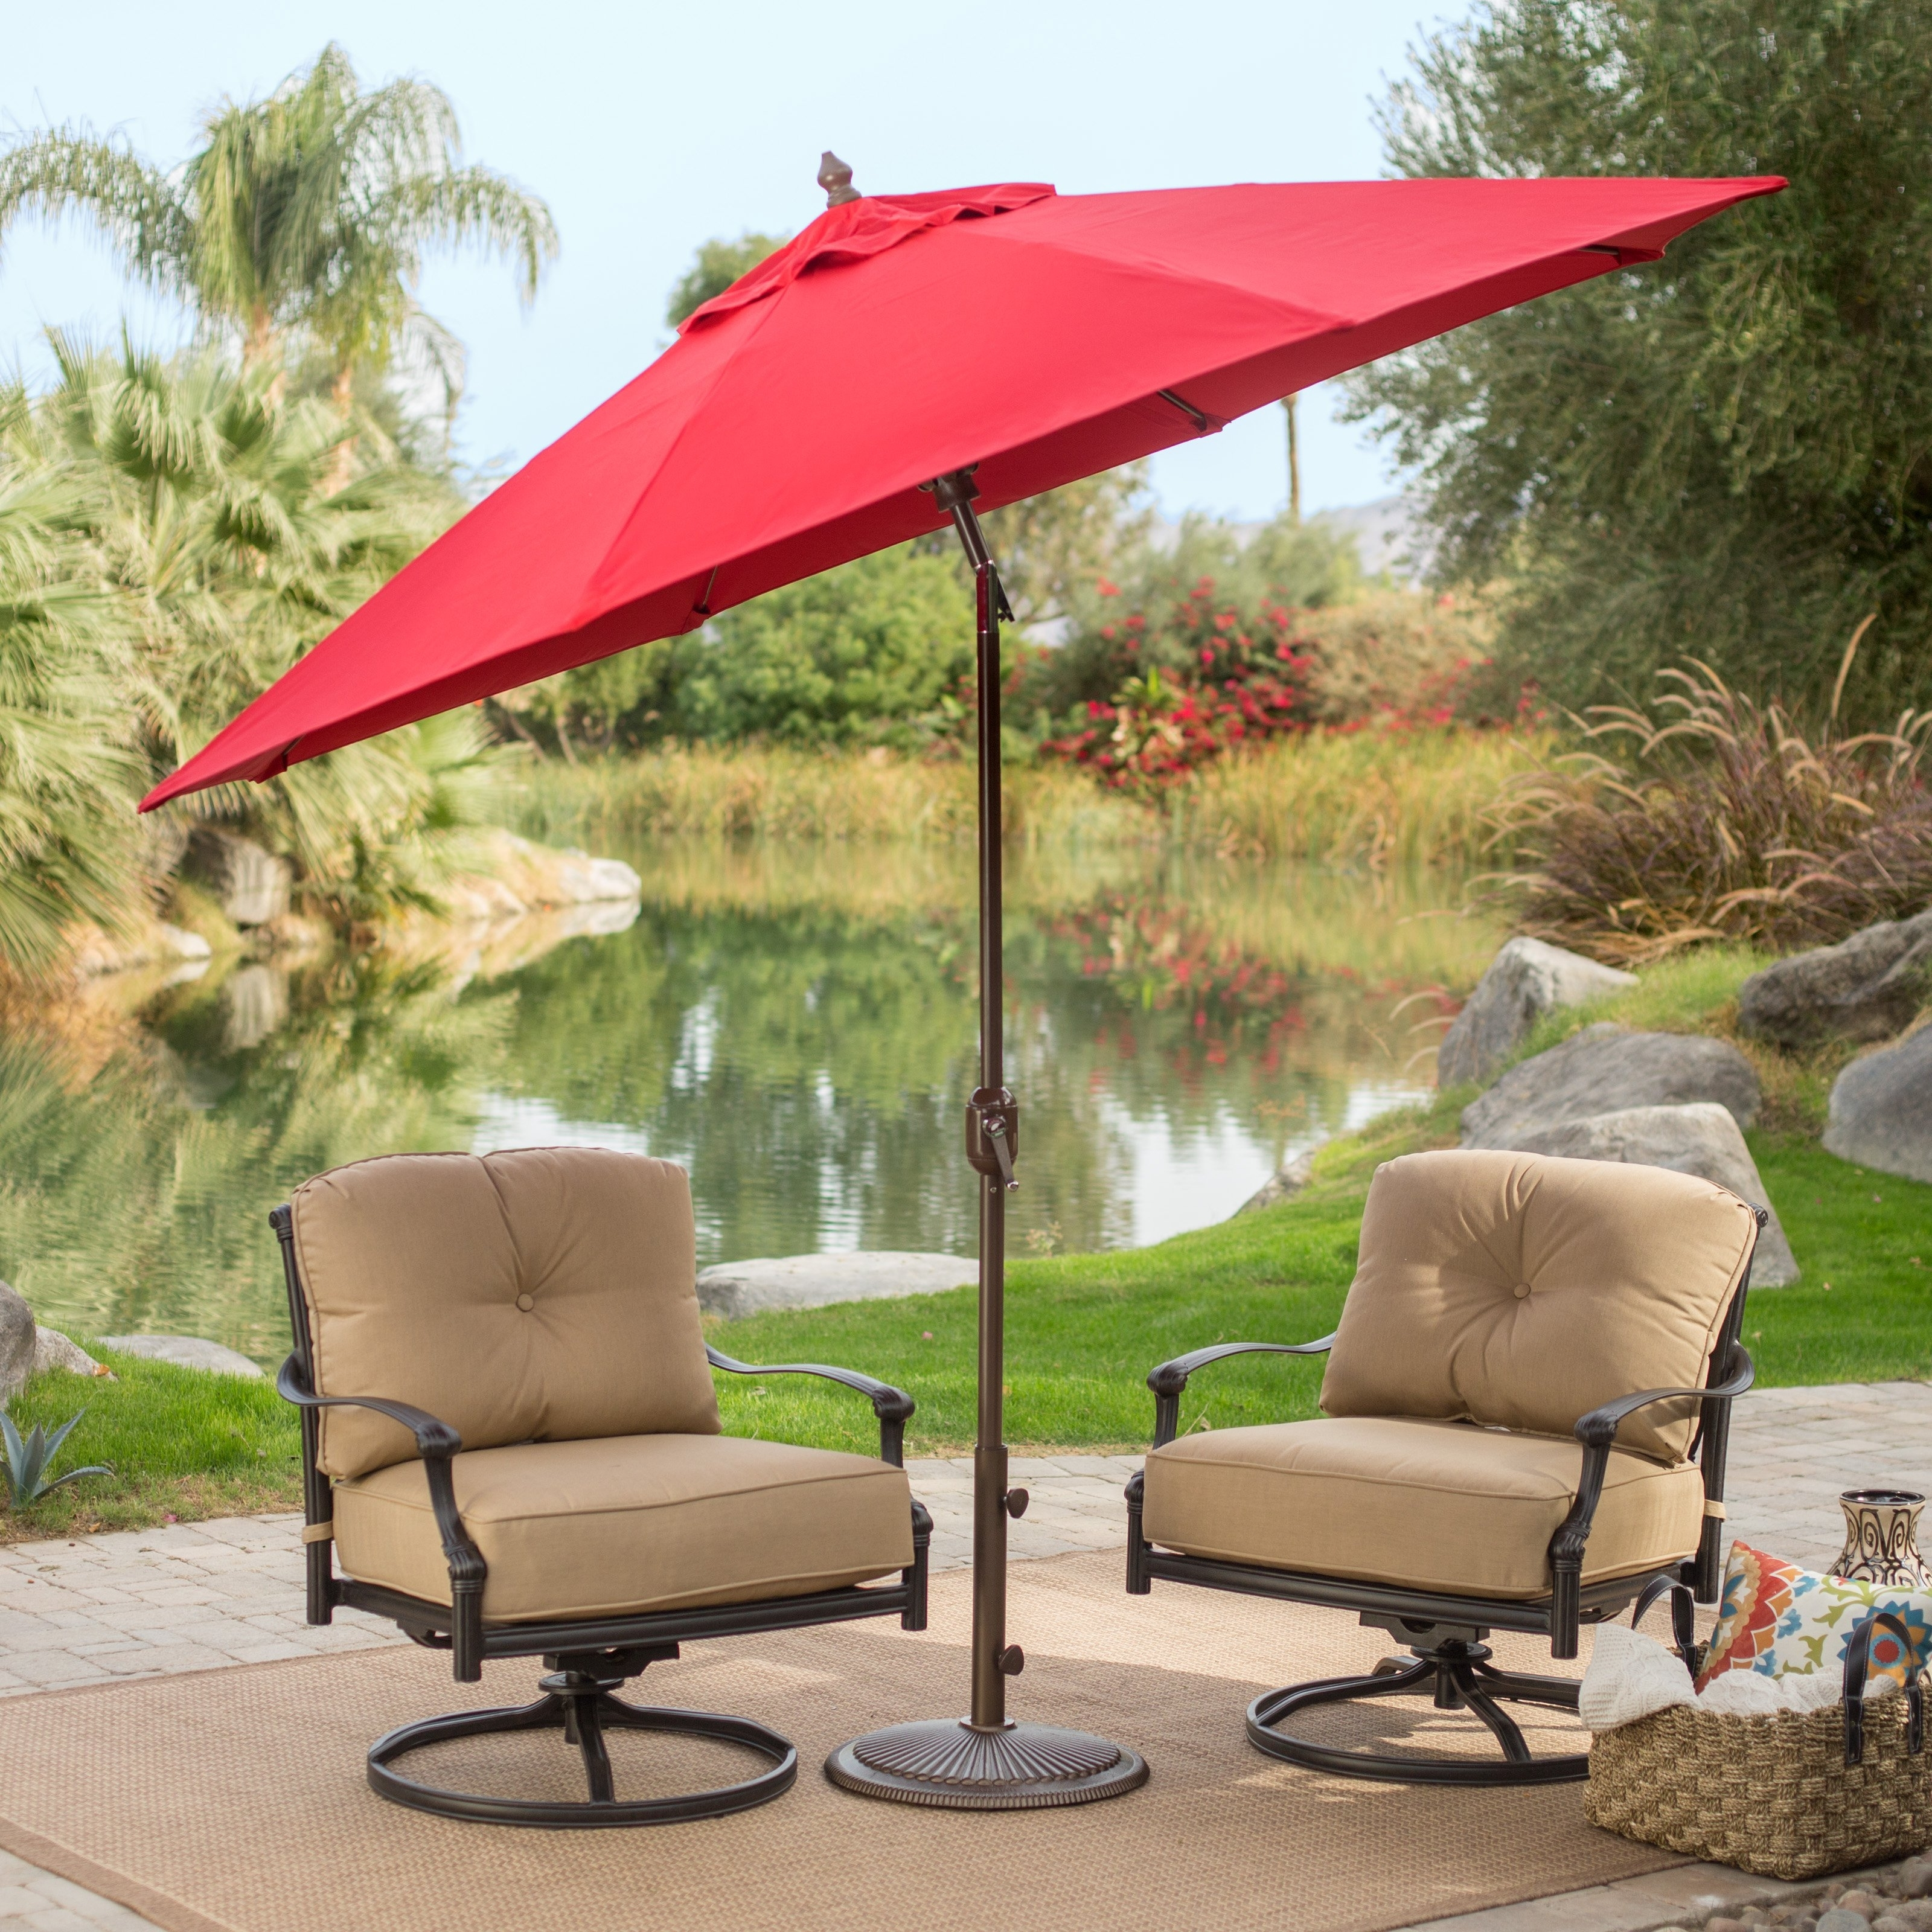 2019 Wind Resistant Patio Umbrellas Pertaining To Patio Umbrella: Best Umbrella For You – Bellissimainteriors (View 1 of 20)